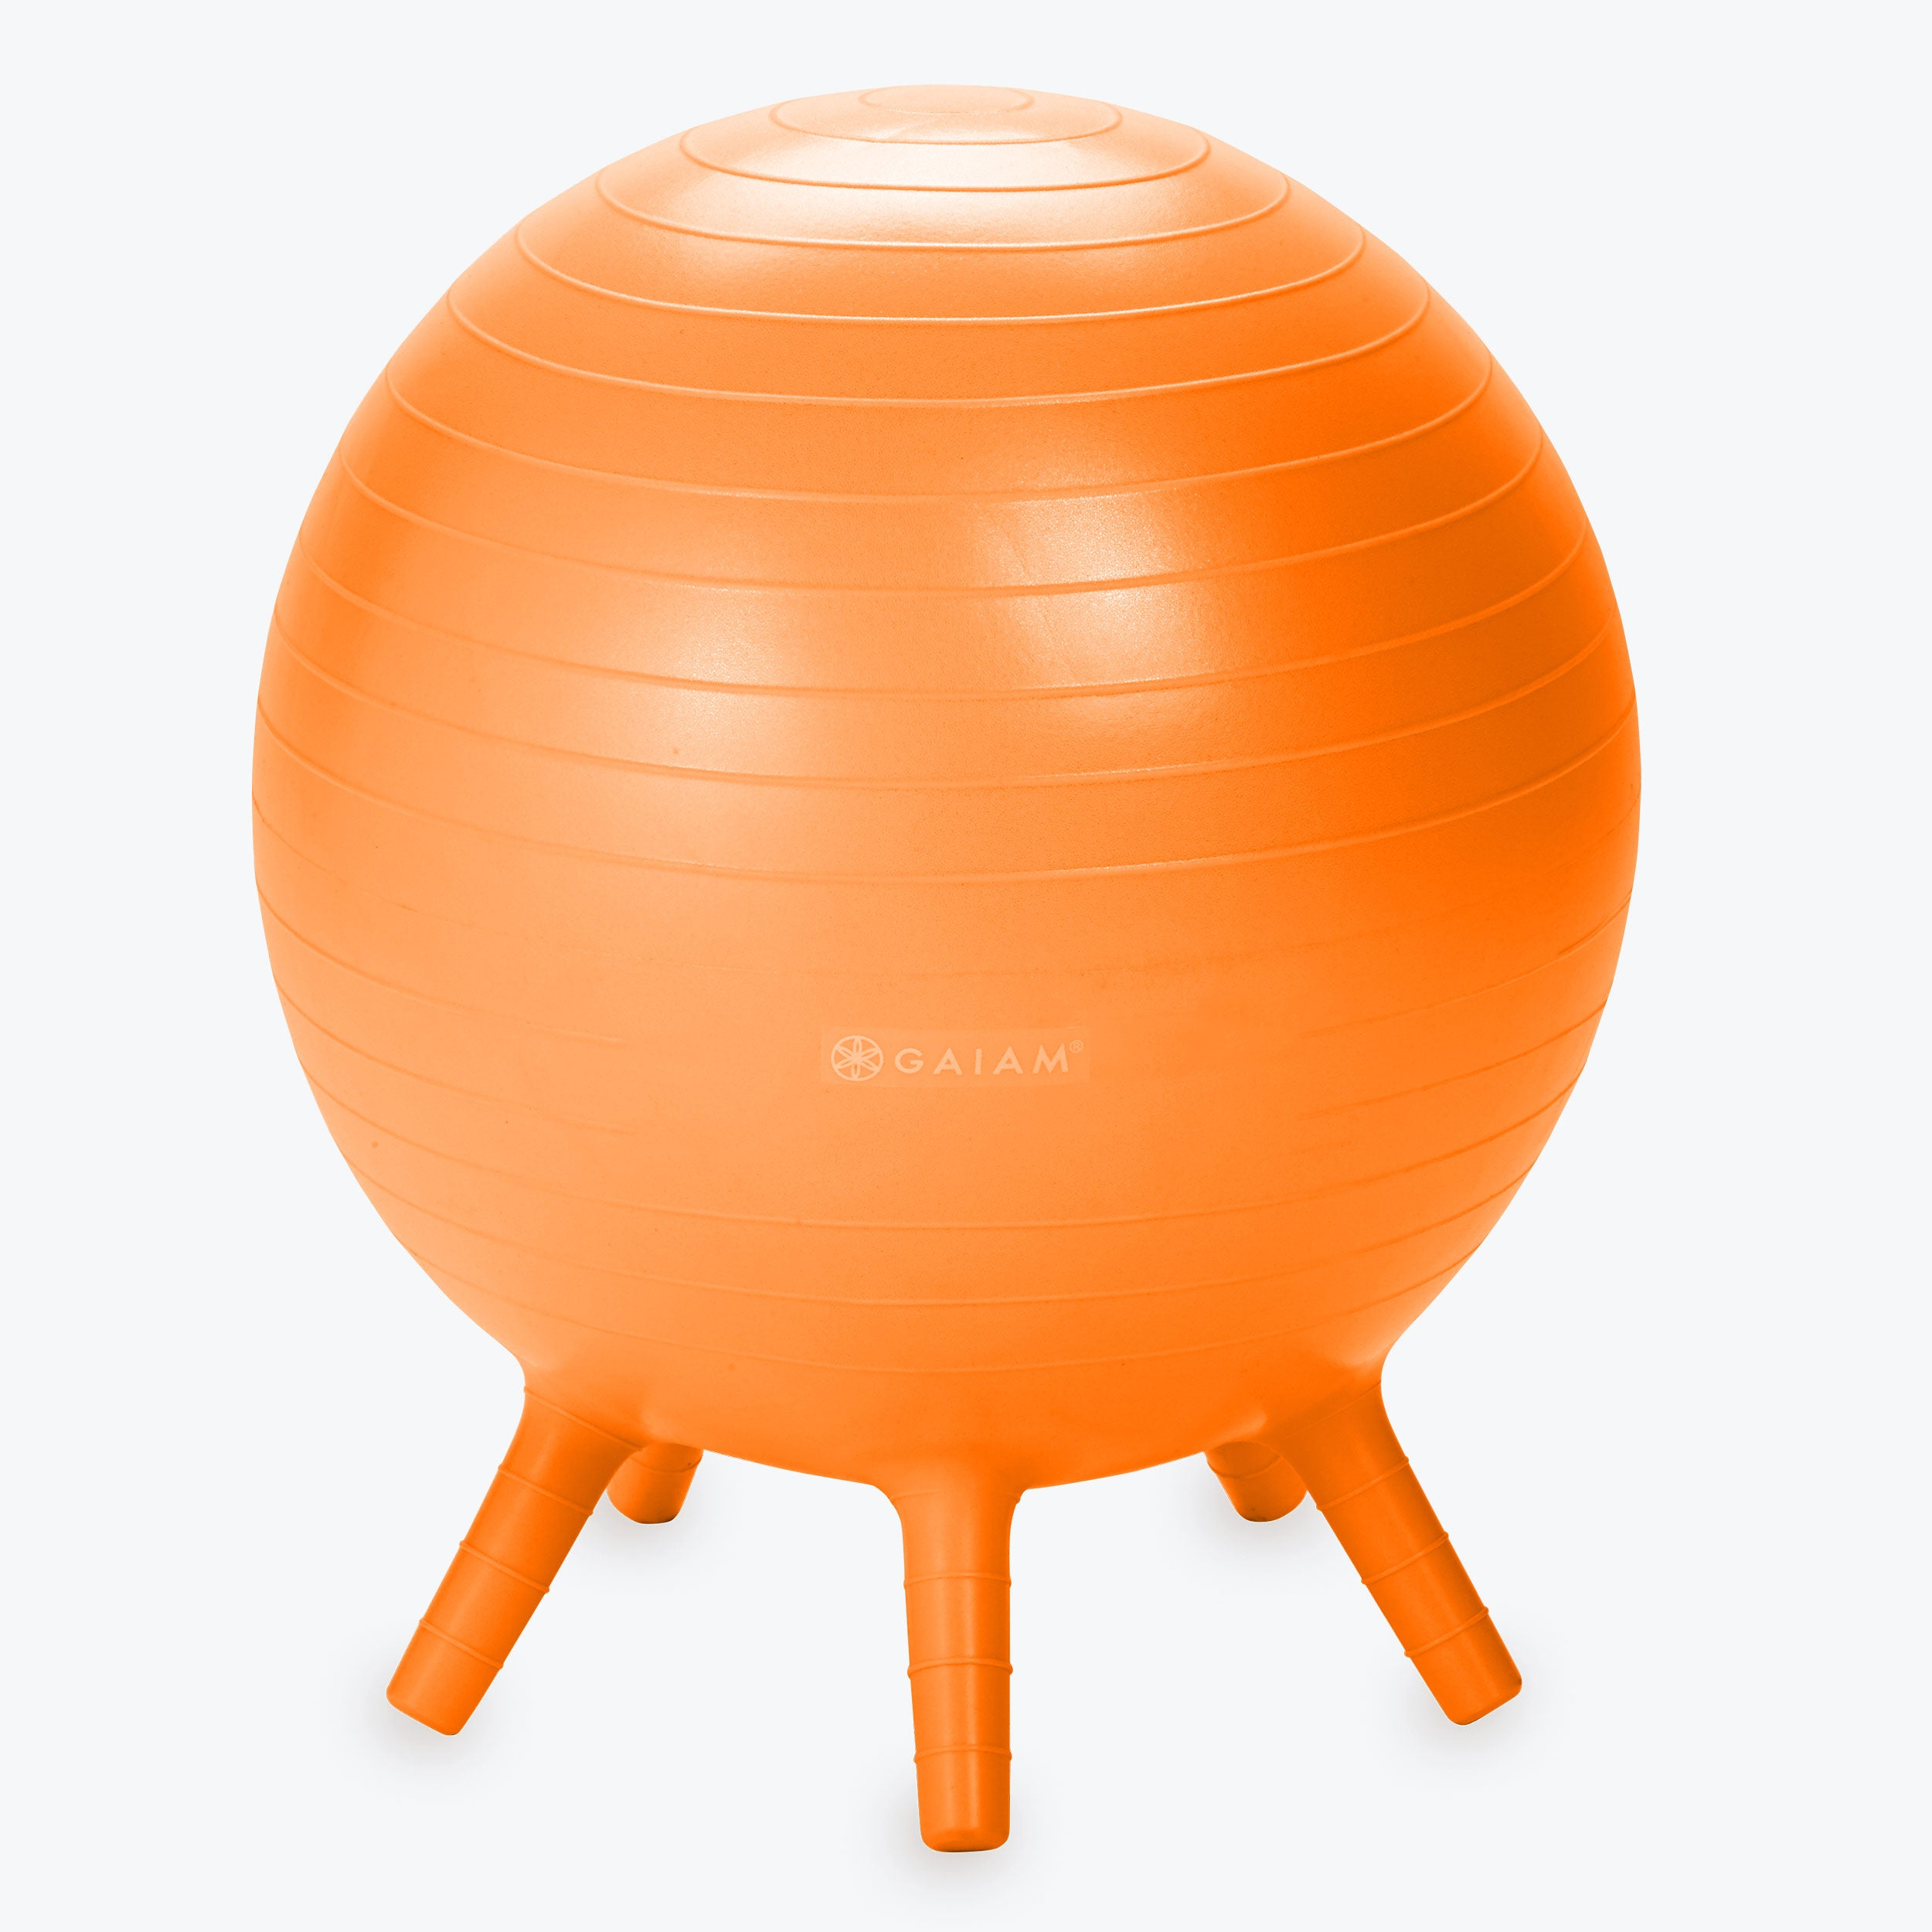 Prints /& Sizes gaiam Kids Stay-N-Play Childrens Balance Ball Flexible School Chair Active Classroom Desk Alternative Seating Built-In Stay-Put Soft Stability Legs